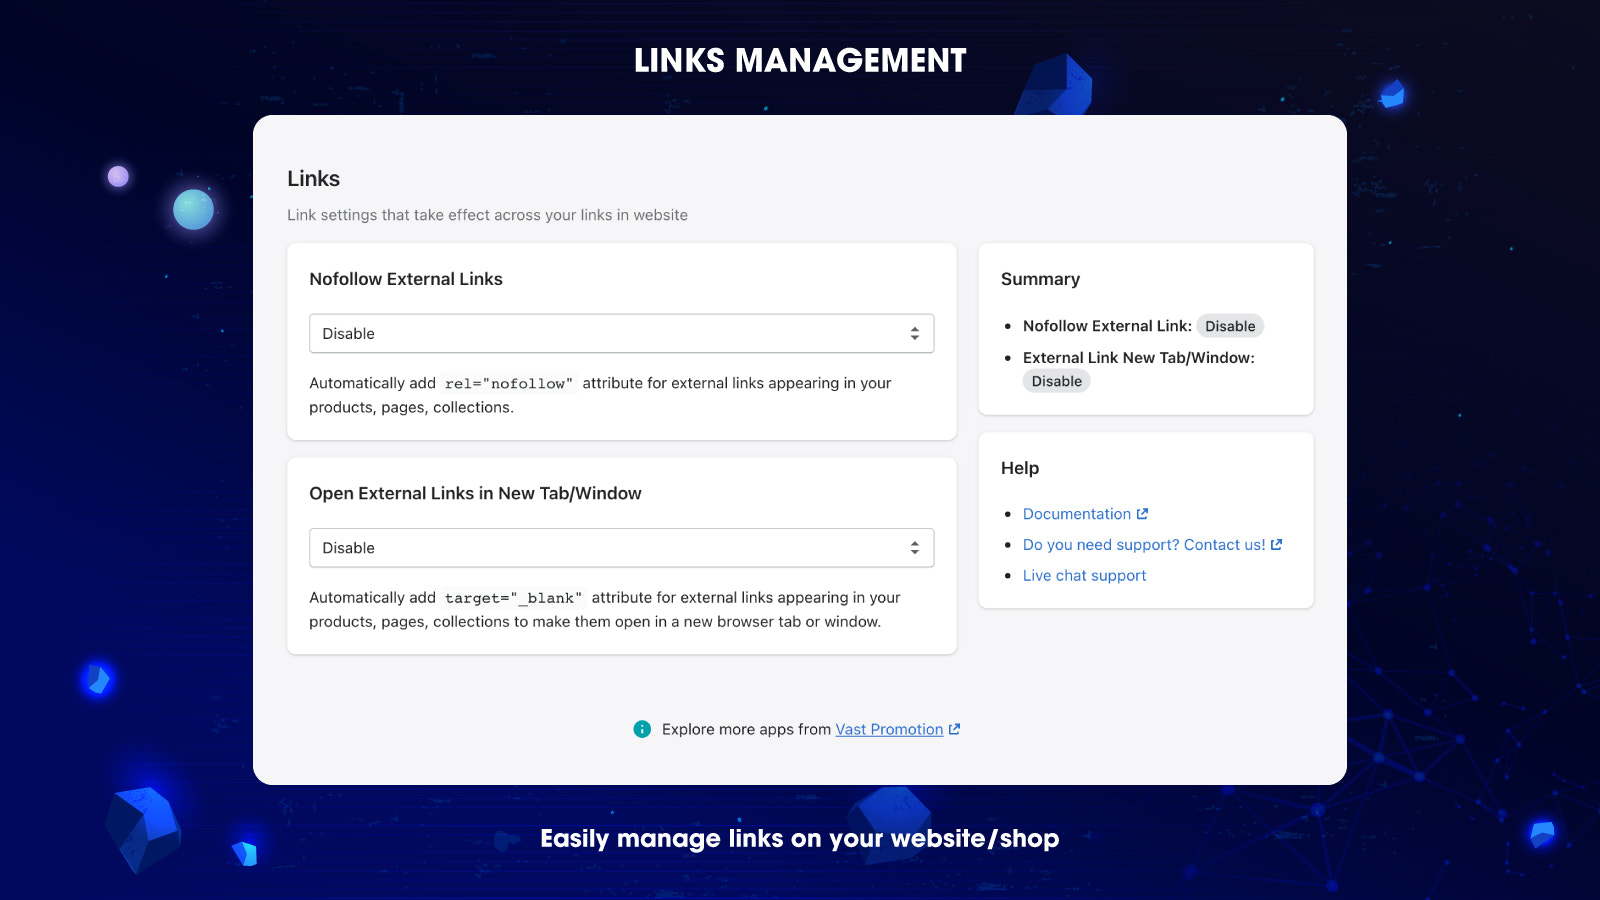 Link manager controls all your website's links